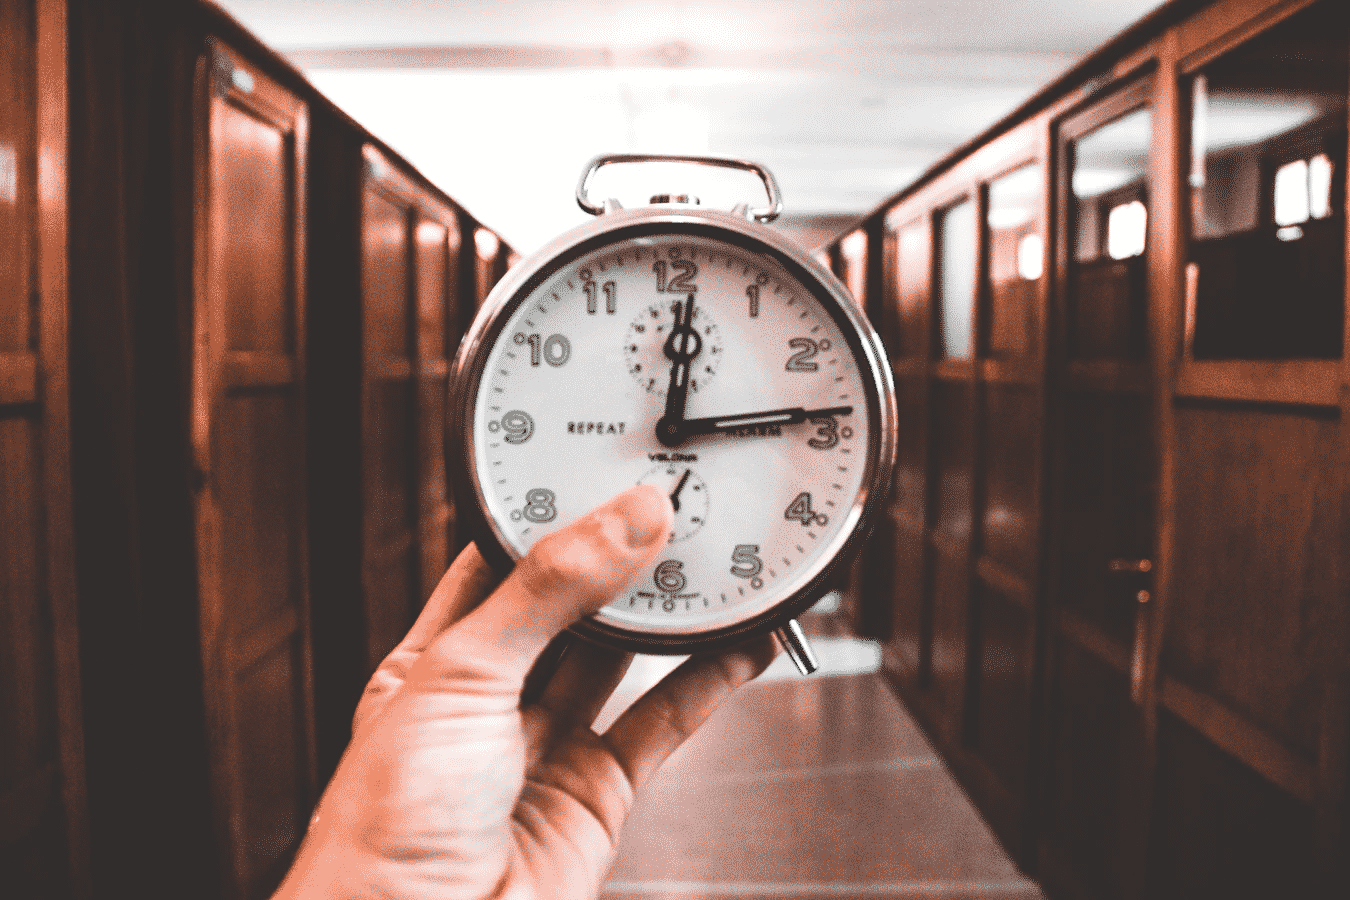 Holding a Clock at the Hallway